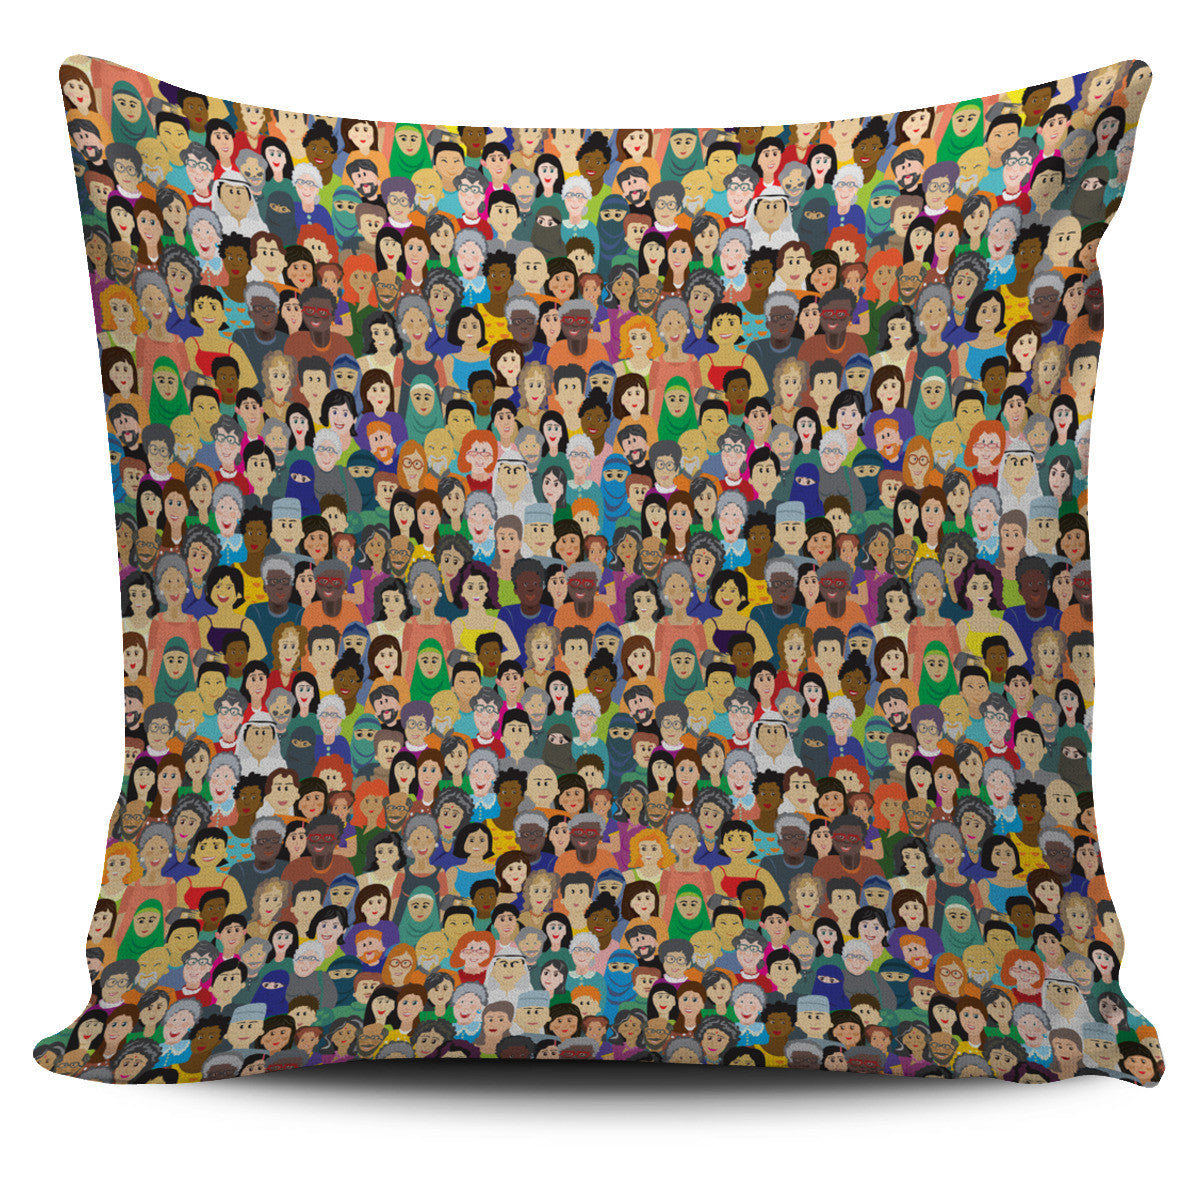 Diversity Rocks Pillow Cover